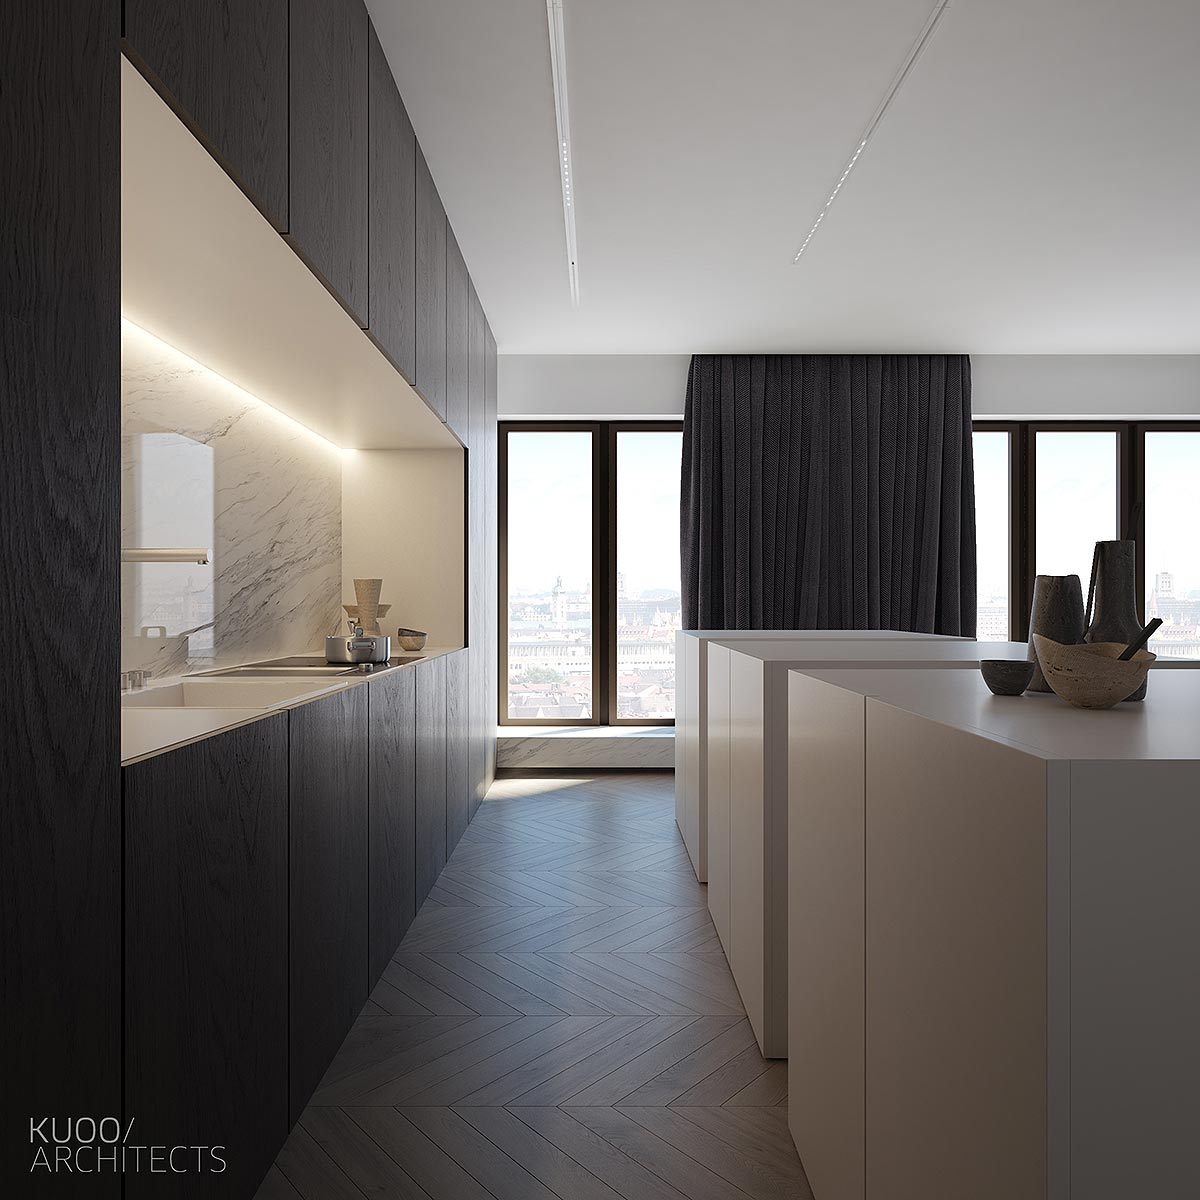 C_kuoo_architects_warsaw_minimal_interiors_contemporaryjpg